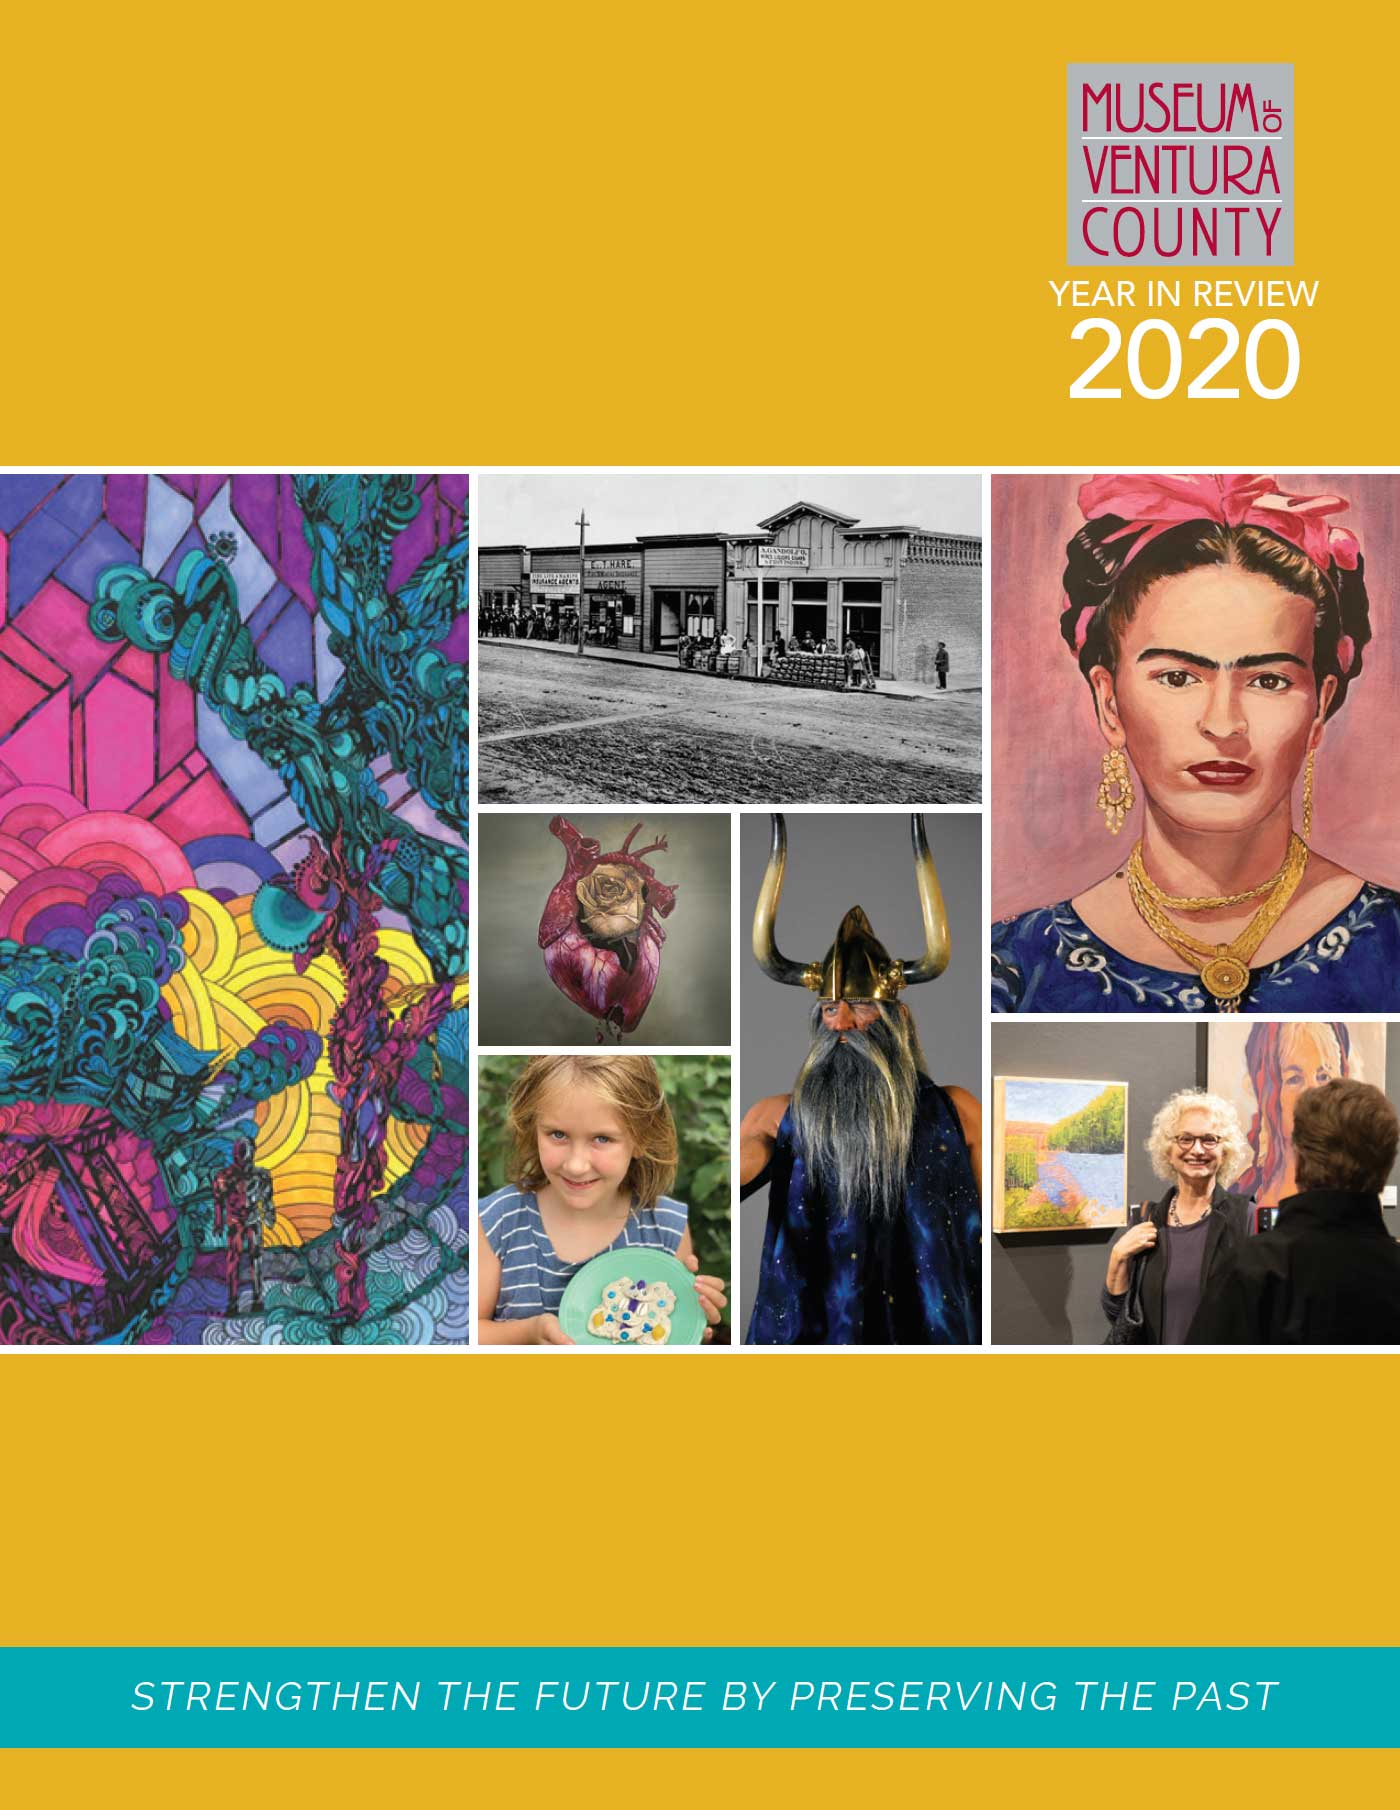 Museum of Ventura County 2020 Year in Review